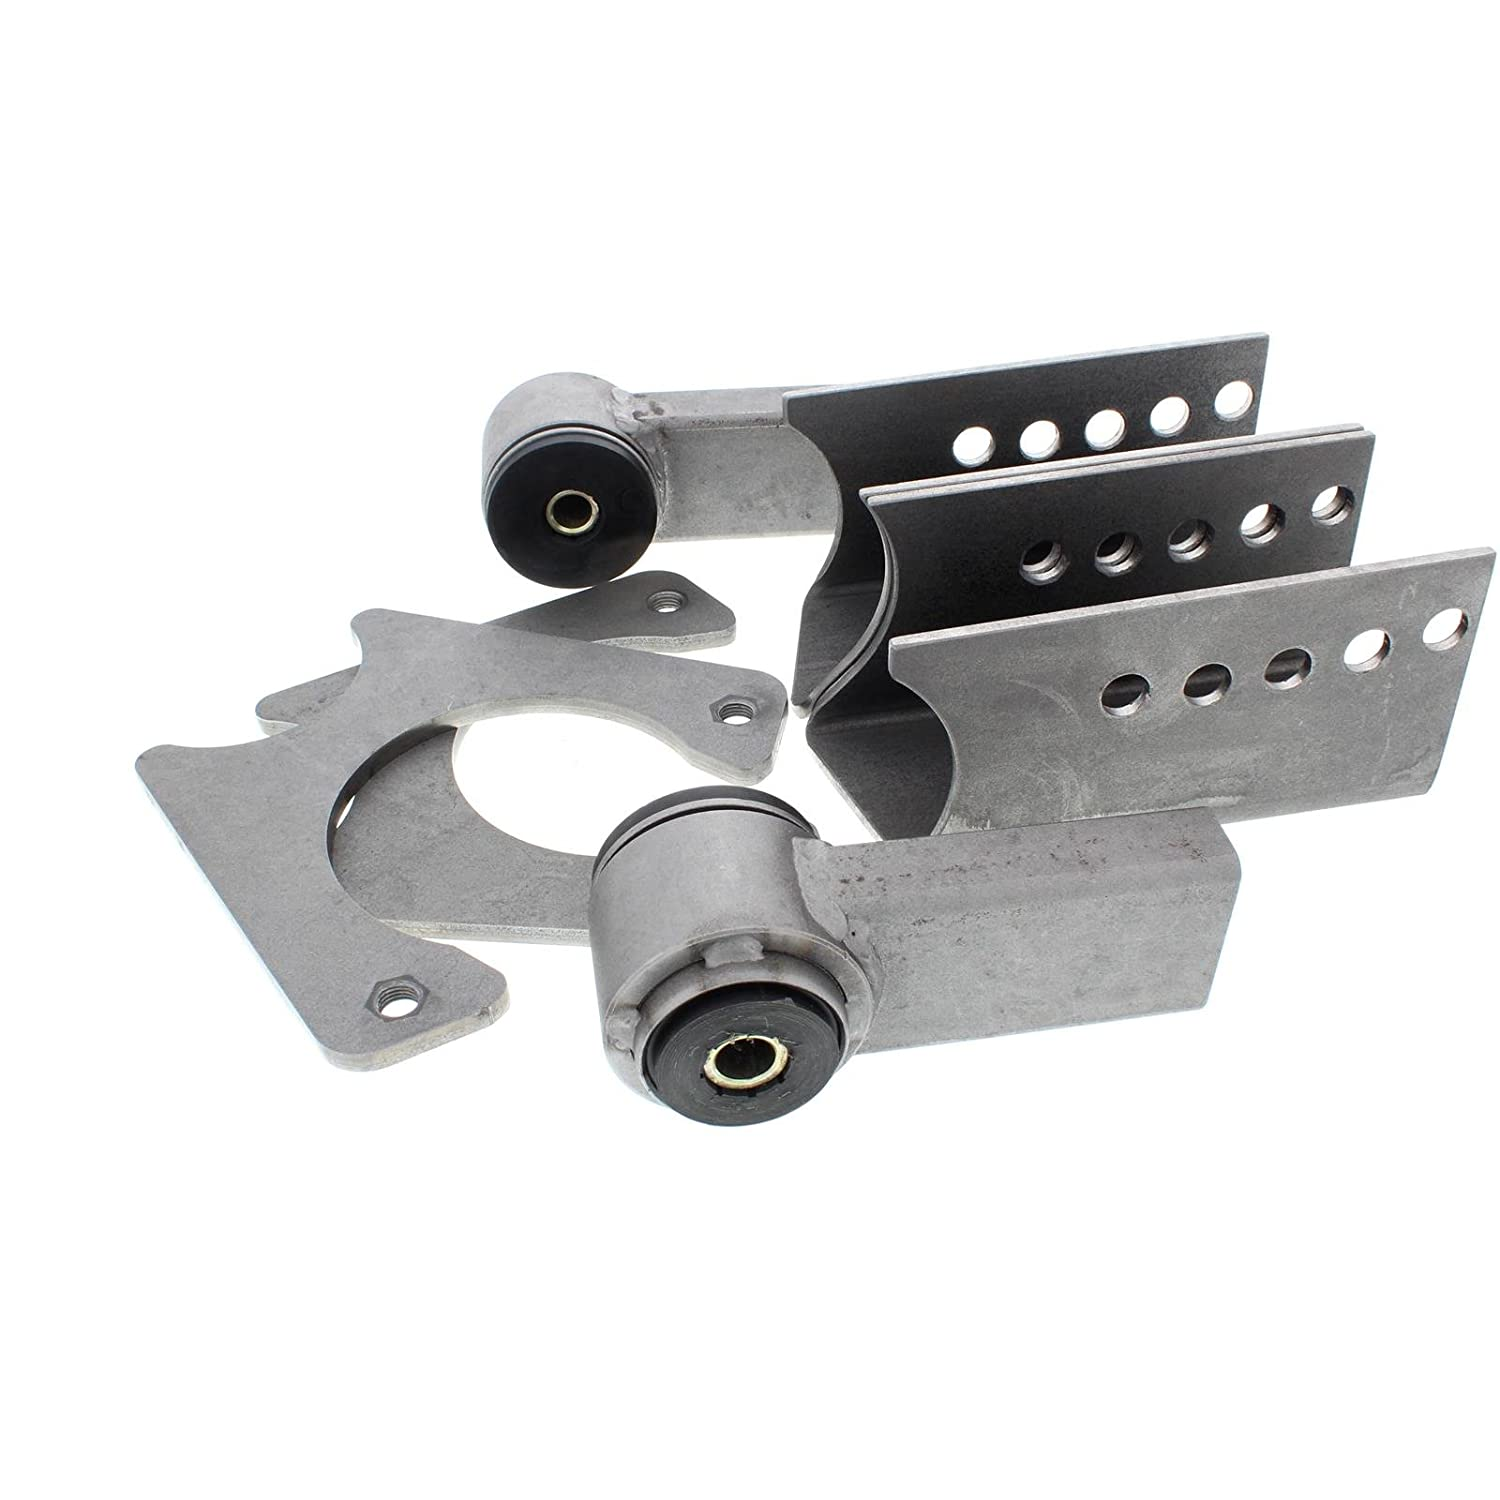 Deluxe 1978-88 Metric Chassis Axle Bracket Kit for 9 Inch Ford